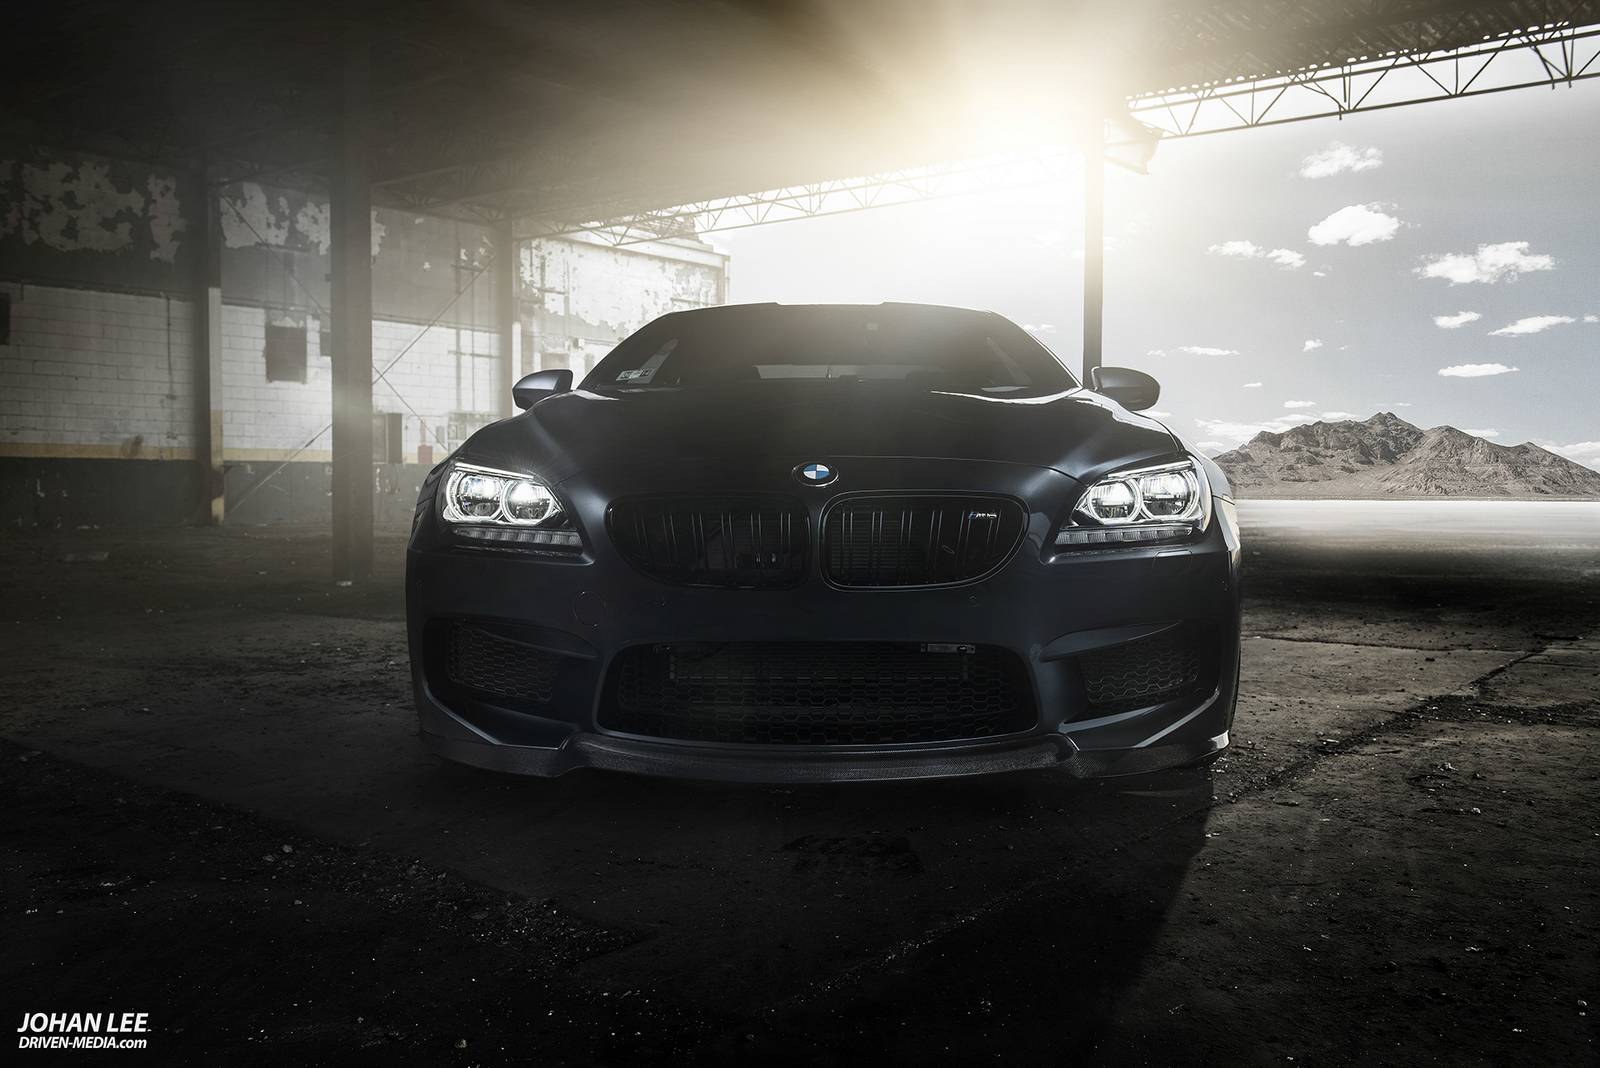 Singapore Grey Bmw F13 M6 Coupe And F10 550xi M Sport